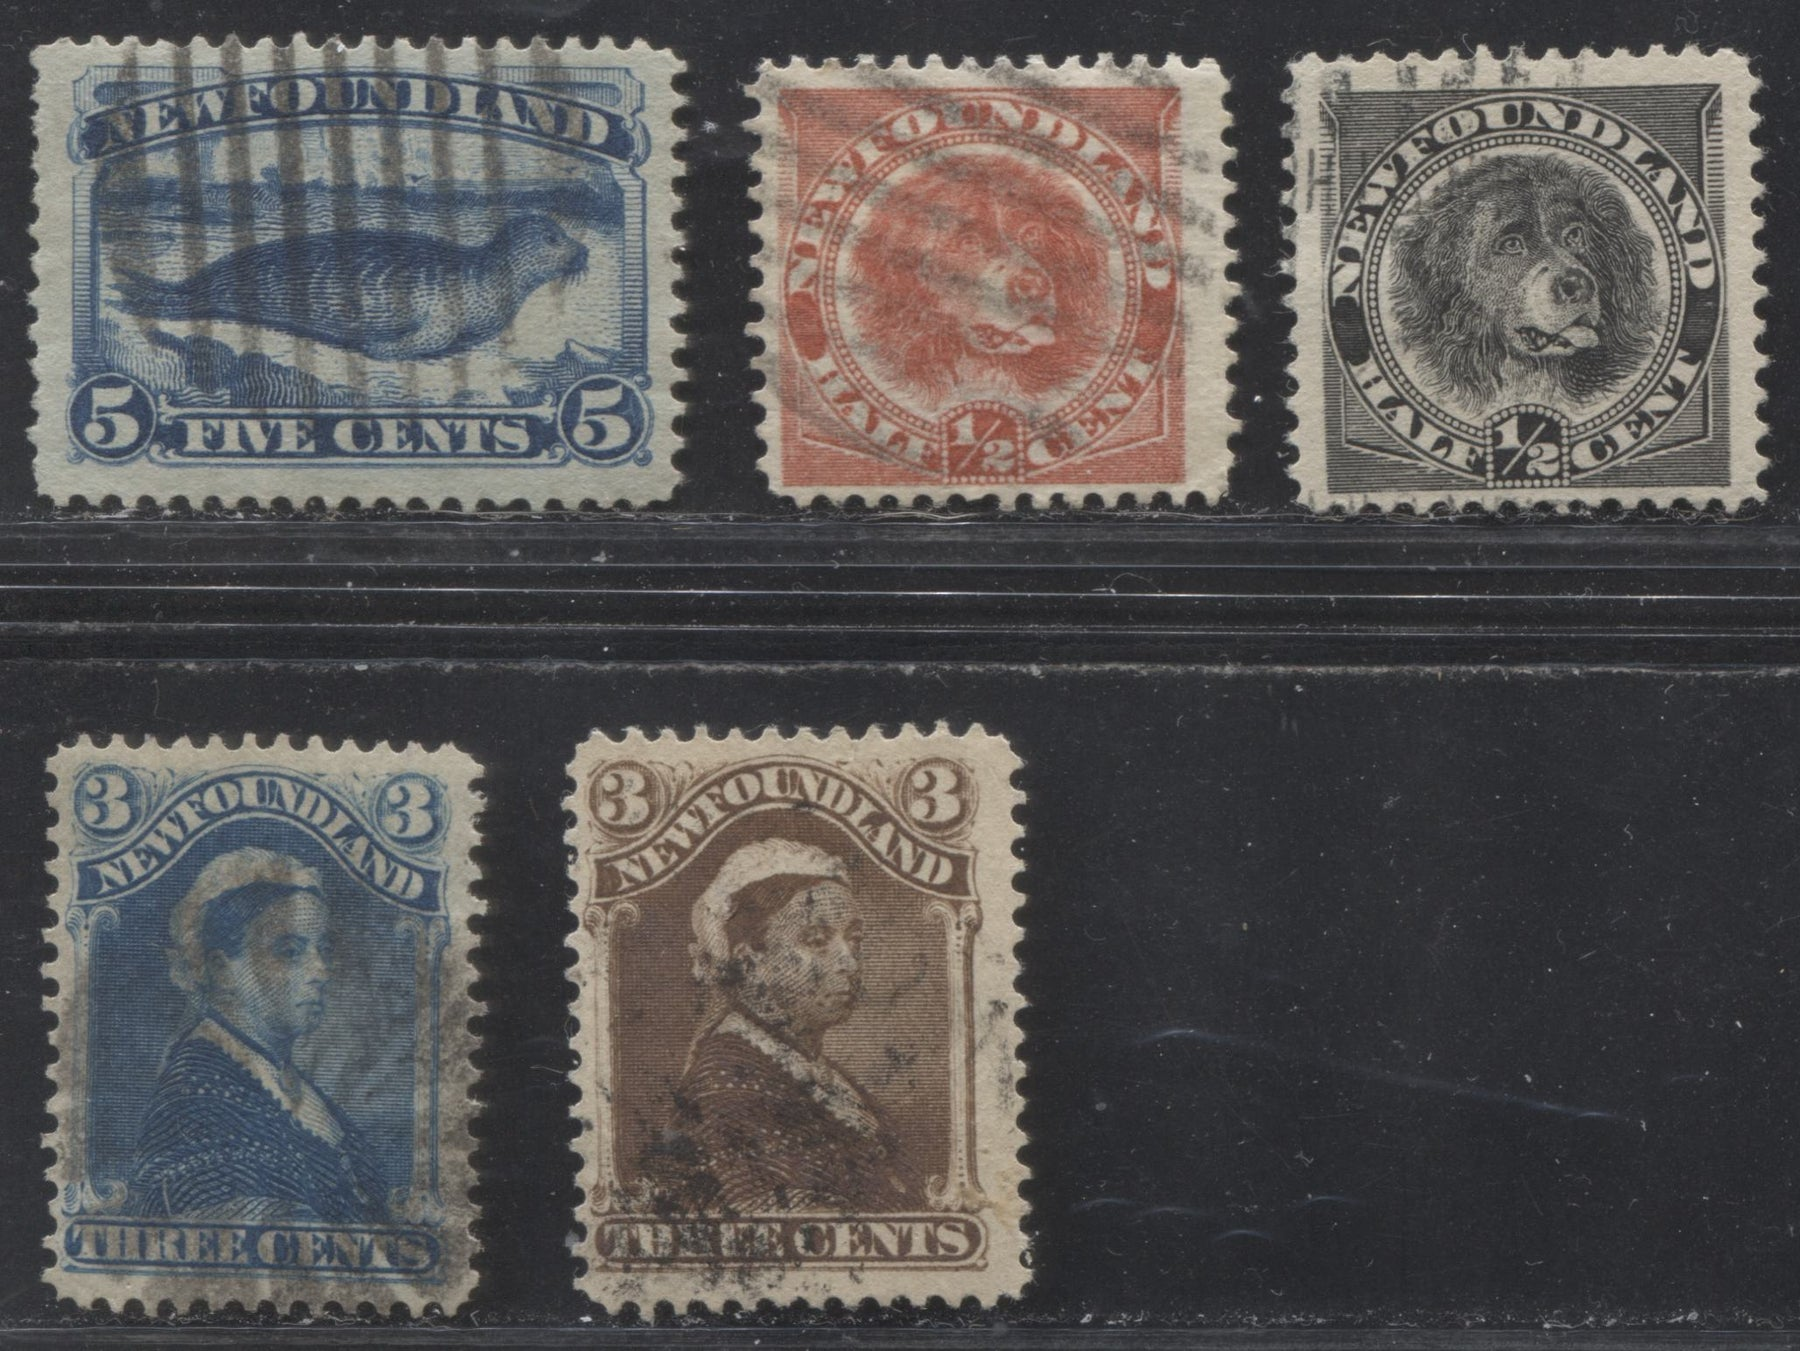 Newfoundland #49, 50, 54, 56, 58 1/2c Black - 5c Dark Blue 1887-1896 Third Cents Issue, Fine Used Examples of Several Valus of the Set